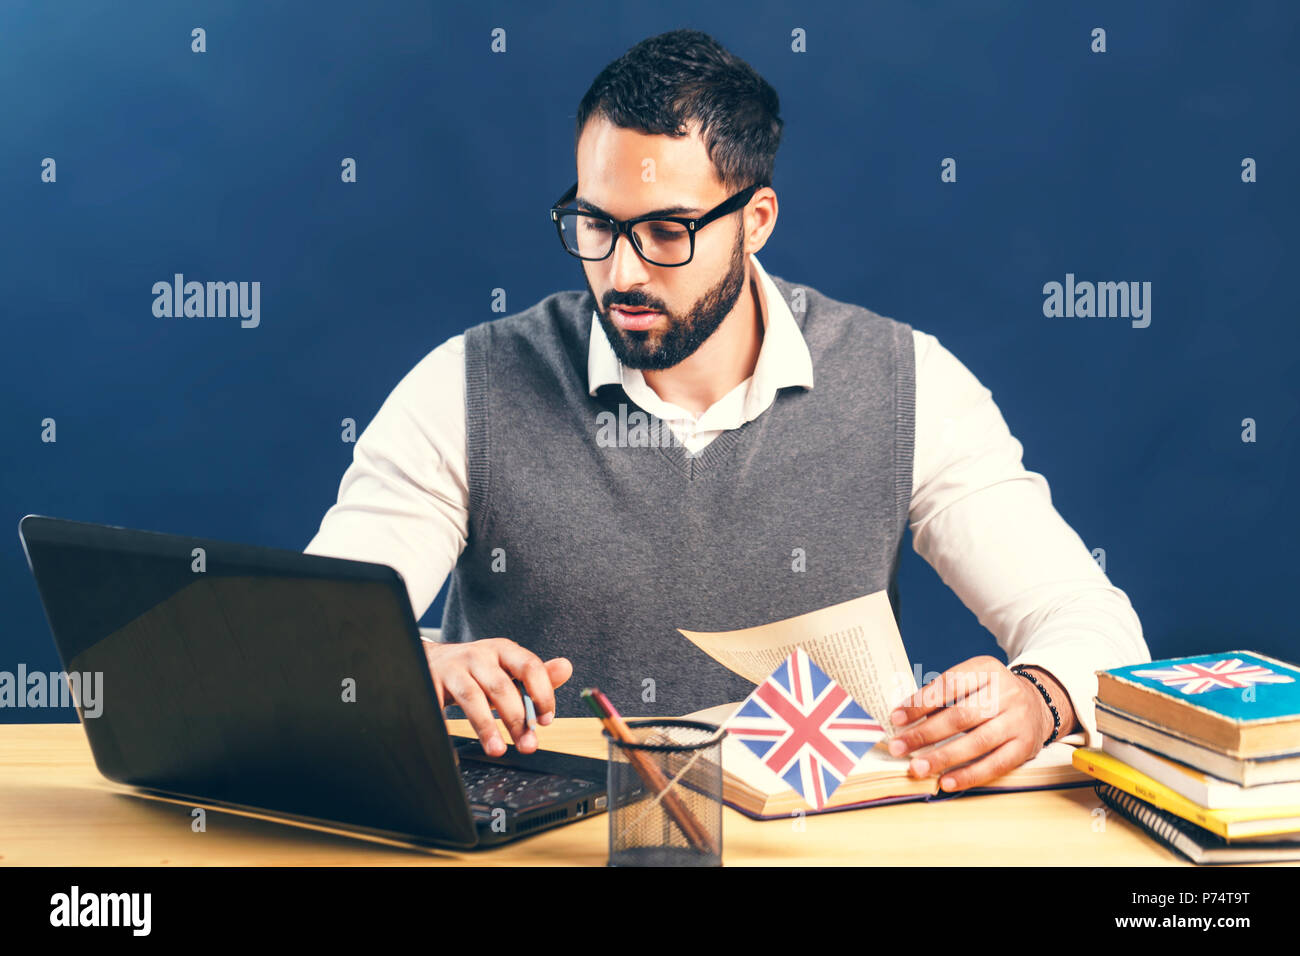 Black-haired man learning english, wearing gray sweater vest and pristine white shirt, working hard at the office desk with laptop before black wall - Stock Image